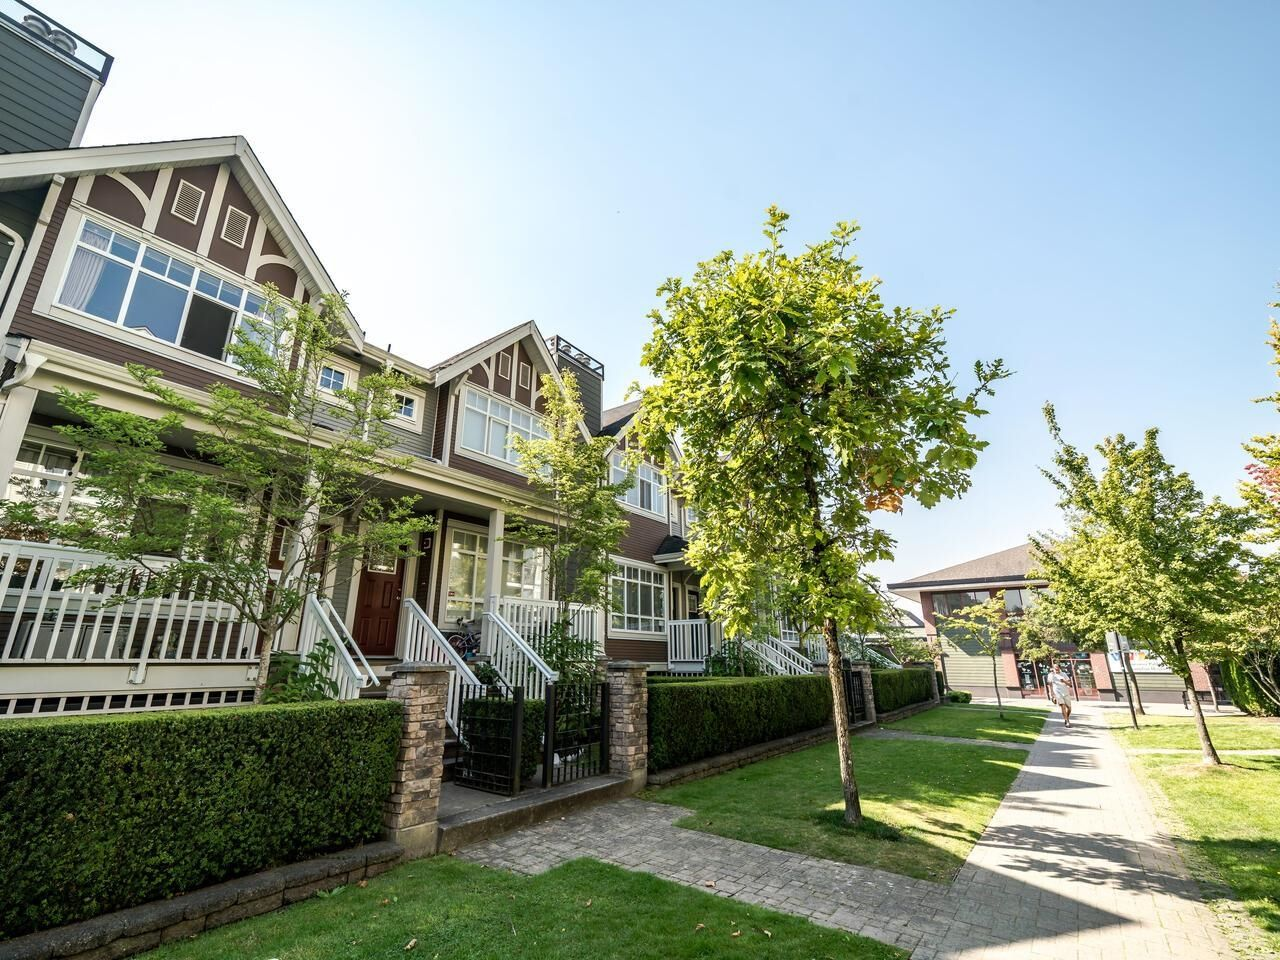 Main Photo: 7111 MONT ROYAL SQUARE in Vancouver: Champlain Heights Townhouse for sale (Vancouver East)  : MLS®# R2611026